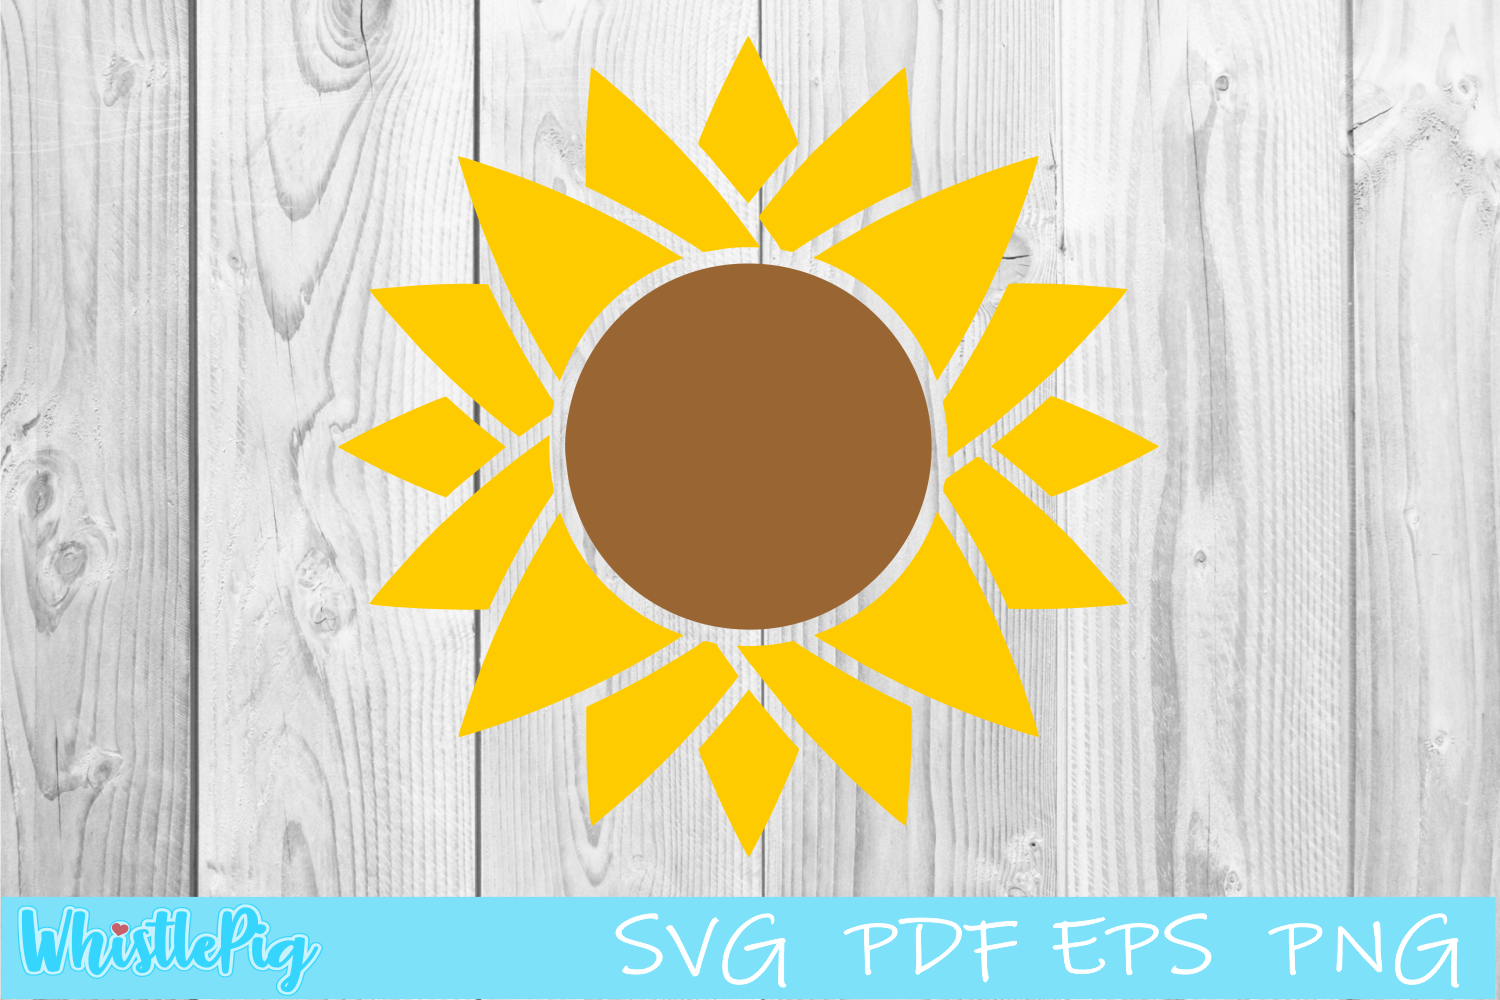 Download 3d Shapes Svg Free Svg Cut Files Create Your Diy Projects Using Your Cricut Explore Silhouette And More The Free Cut Files Include Svg Dxf Eps And Png Files